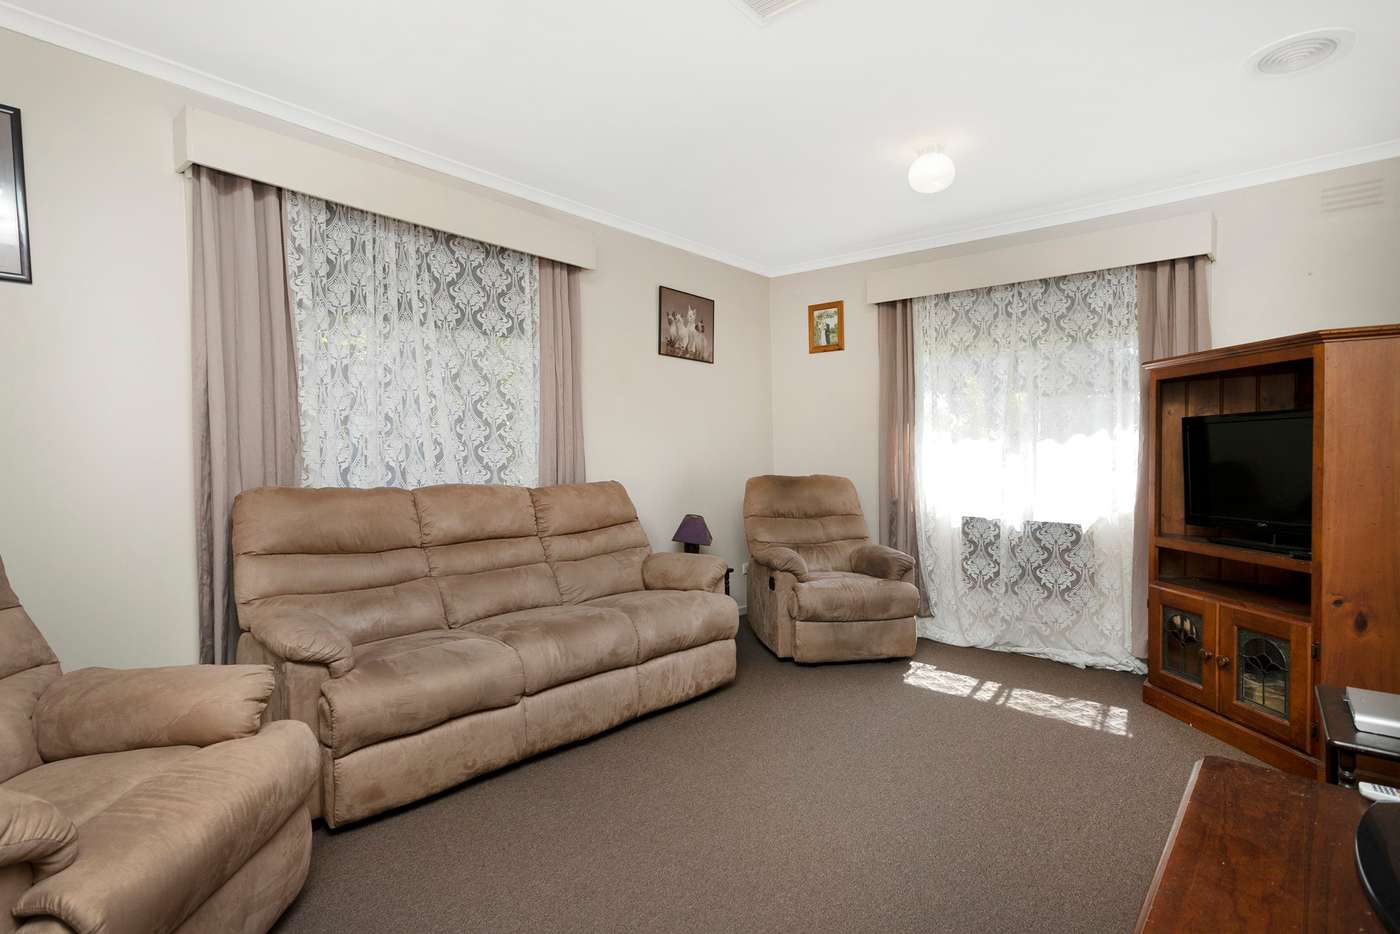 Sixth view of Homely house listing, 9 Barnes Crescent, Sunshine West VIC 3020